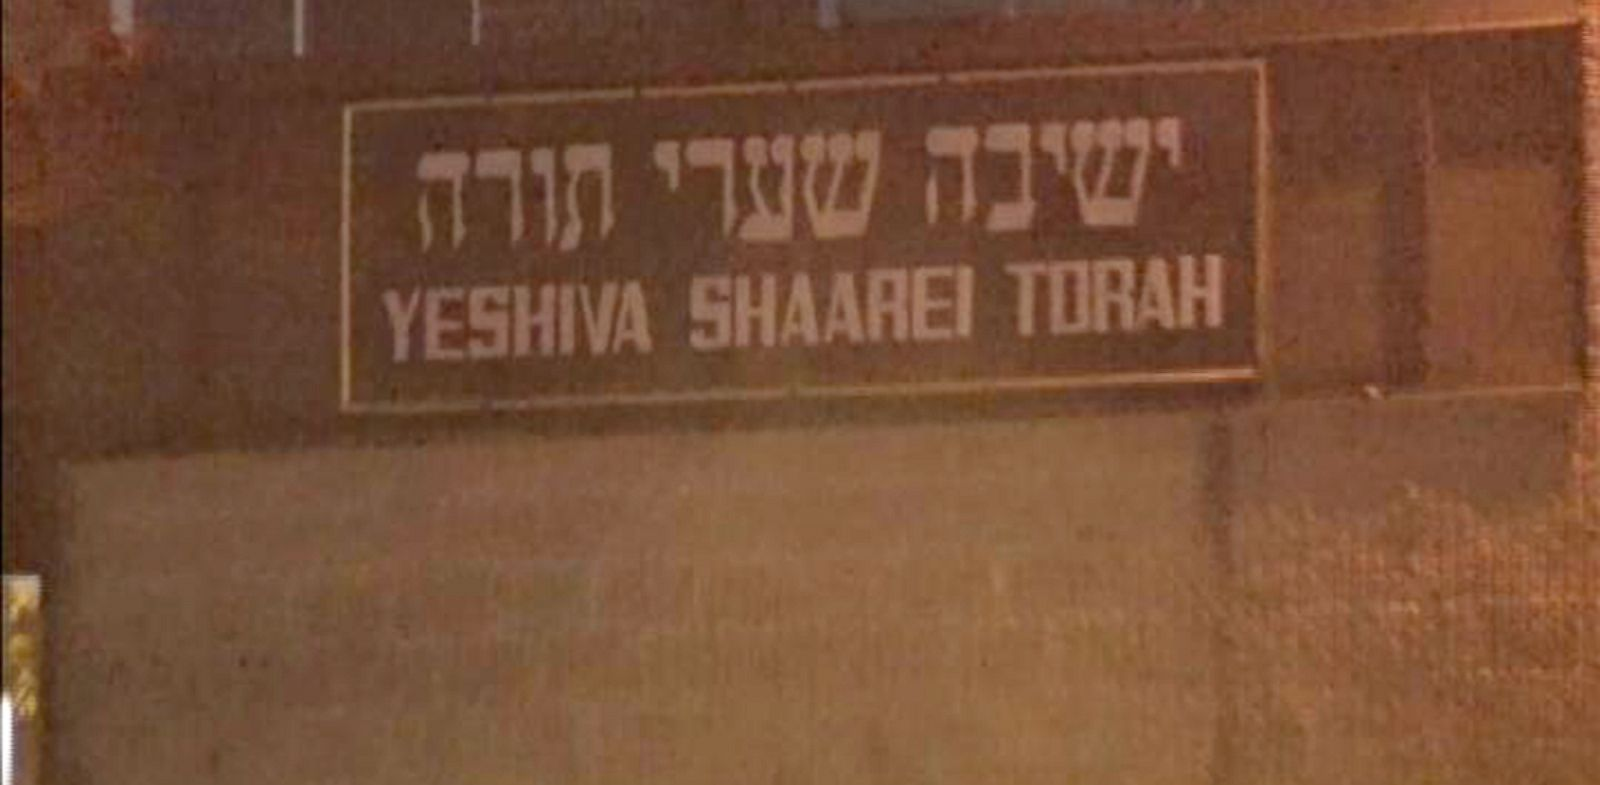 PHOTO: Three rabbis, including one who claims to have conducted more than 2,000 divorces, were arrested for pressuring Orthodox Jewish men into giving their wives religious divorces.